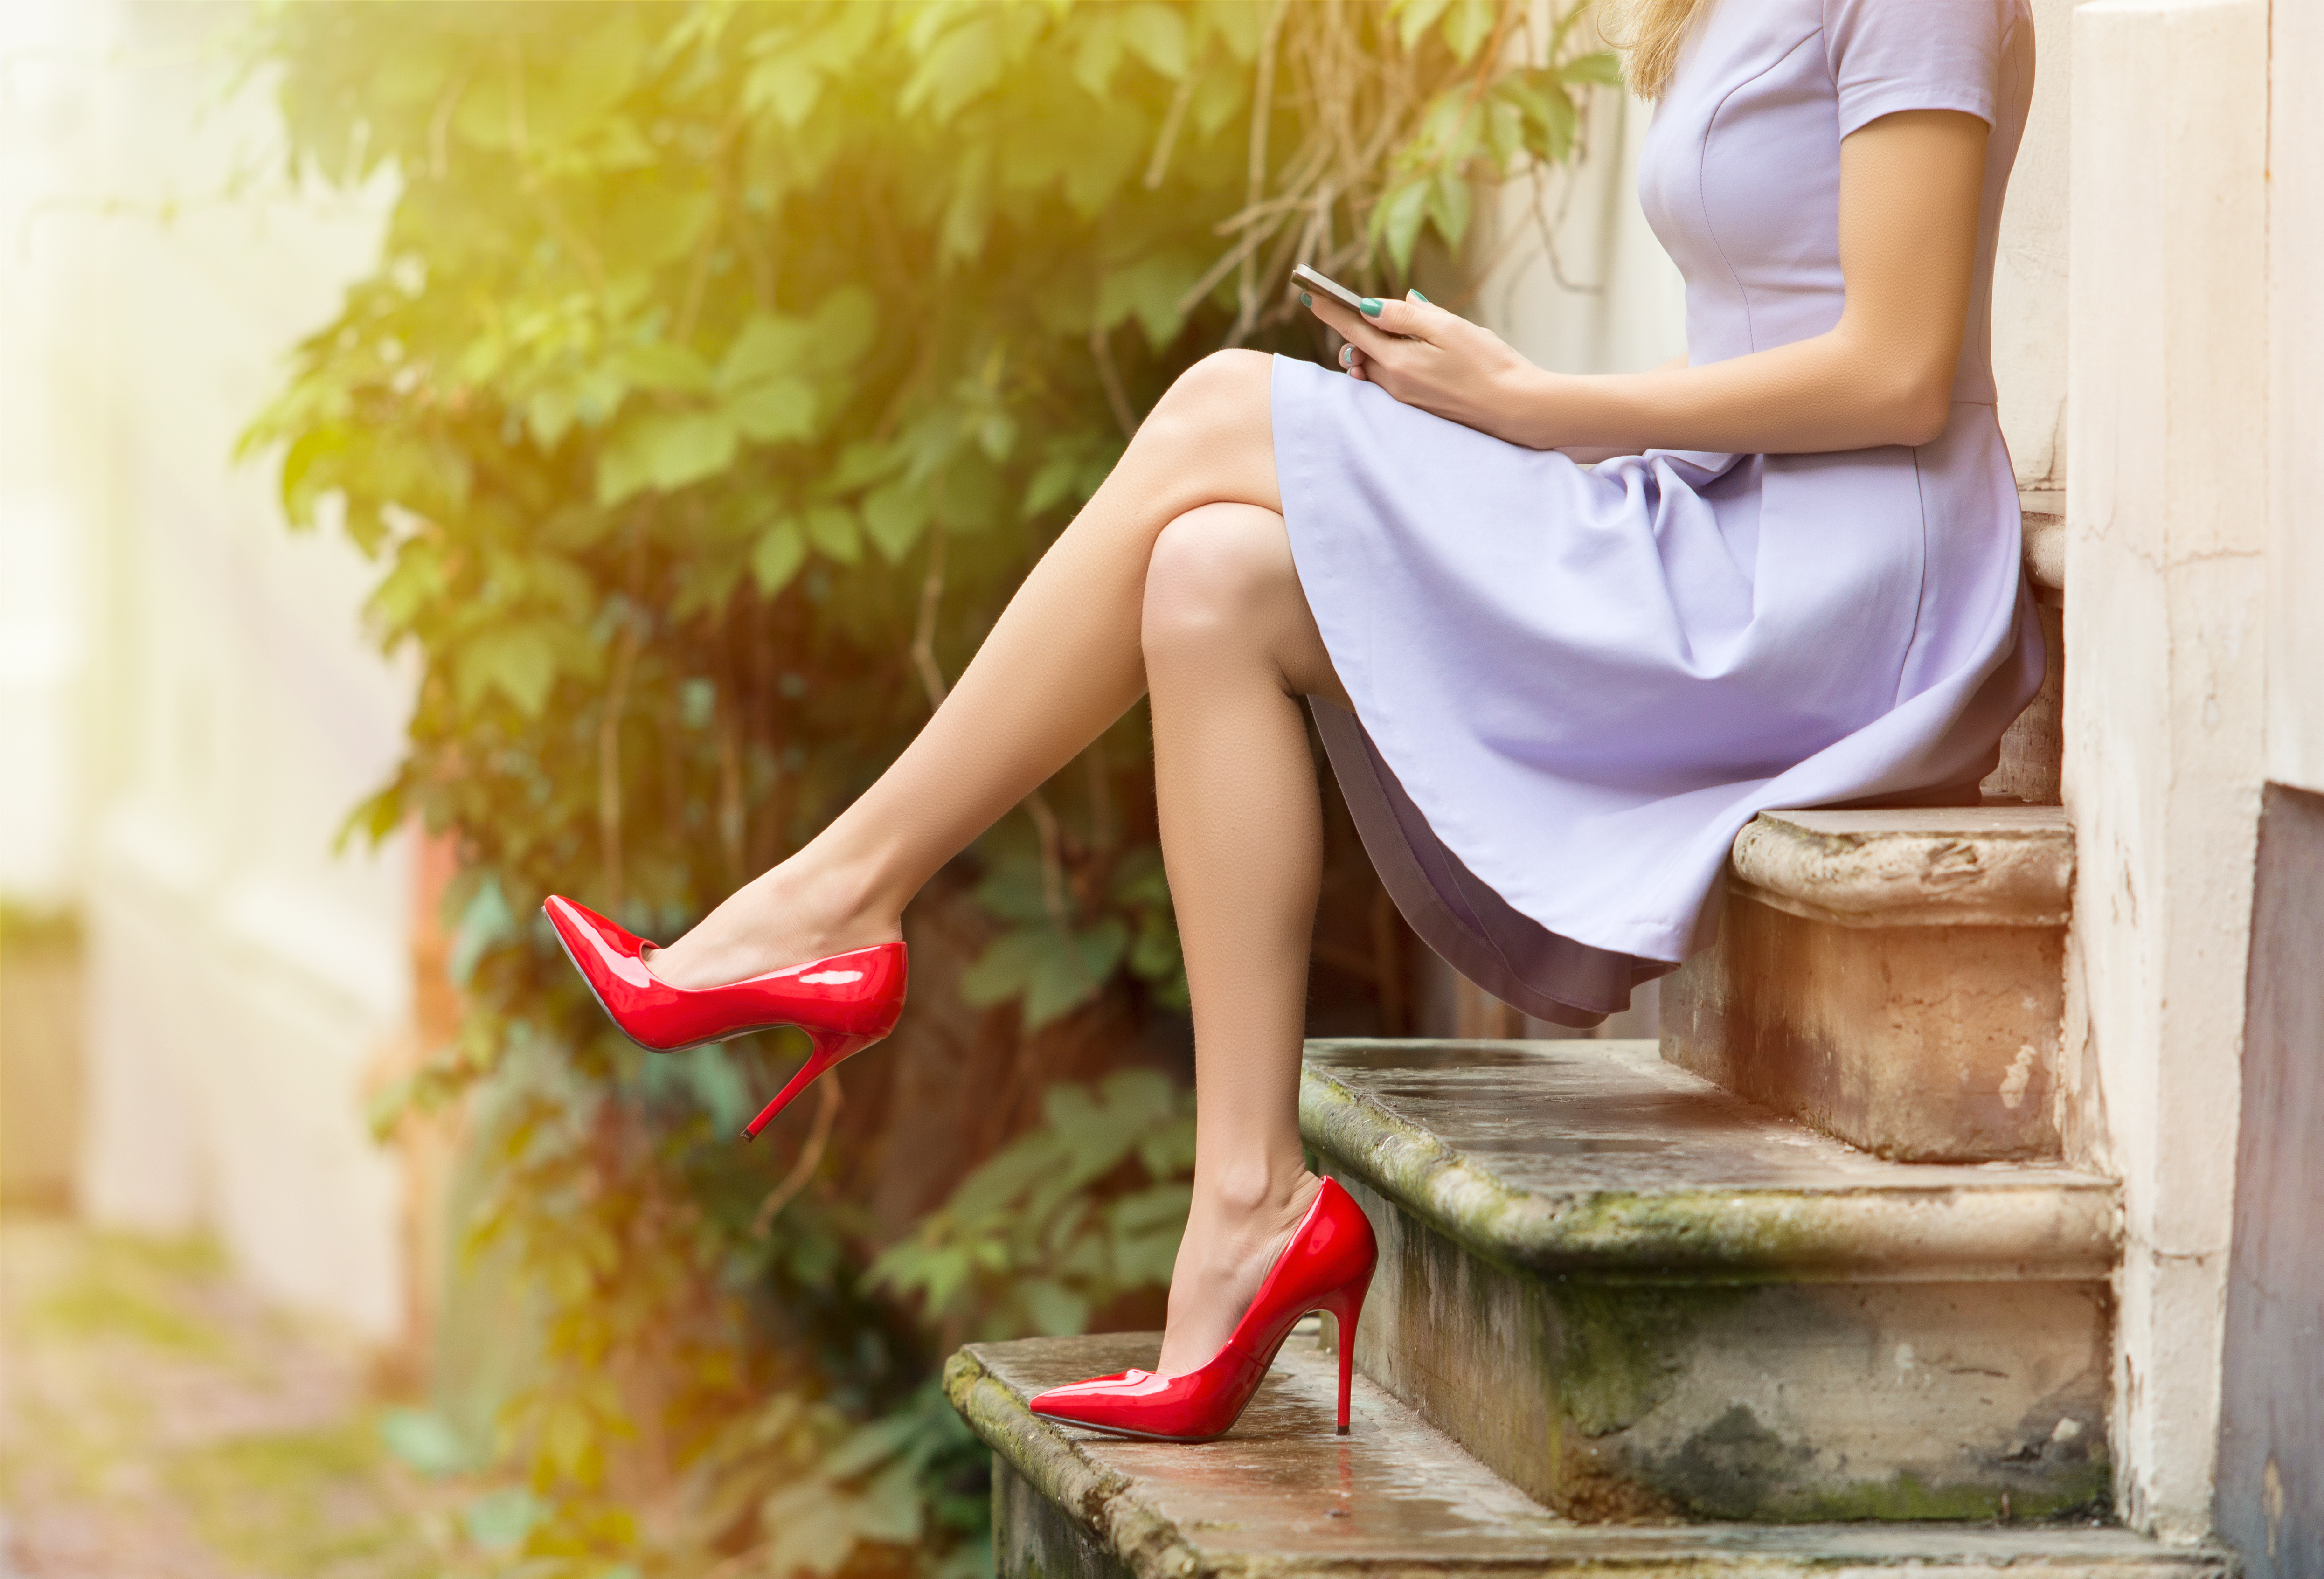 4 Common Risk Factors For Varicose Veins